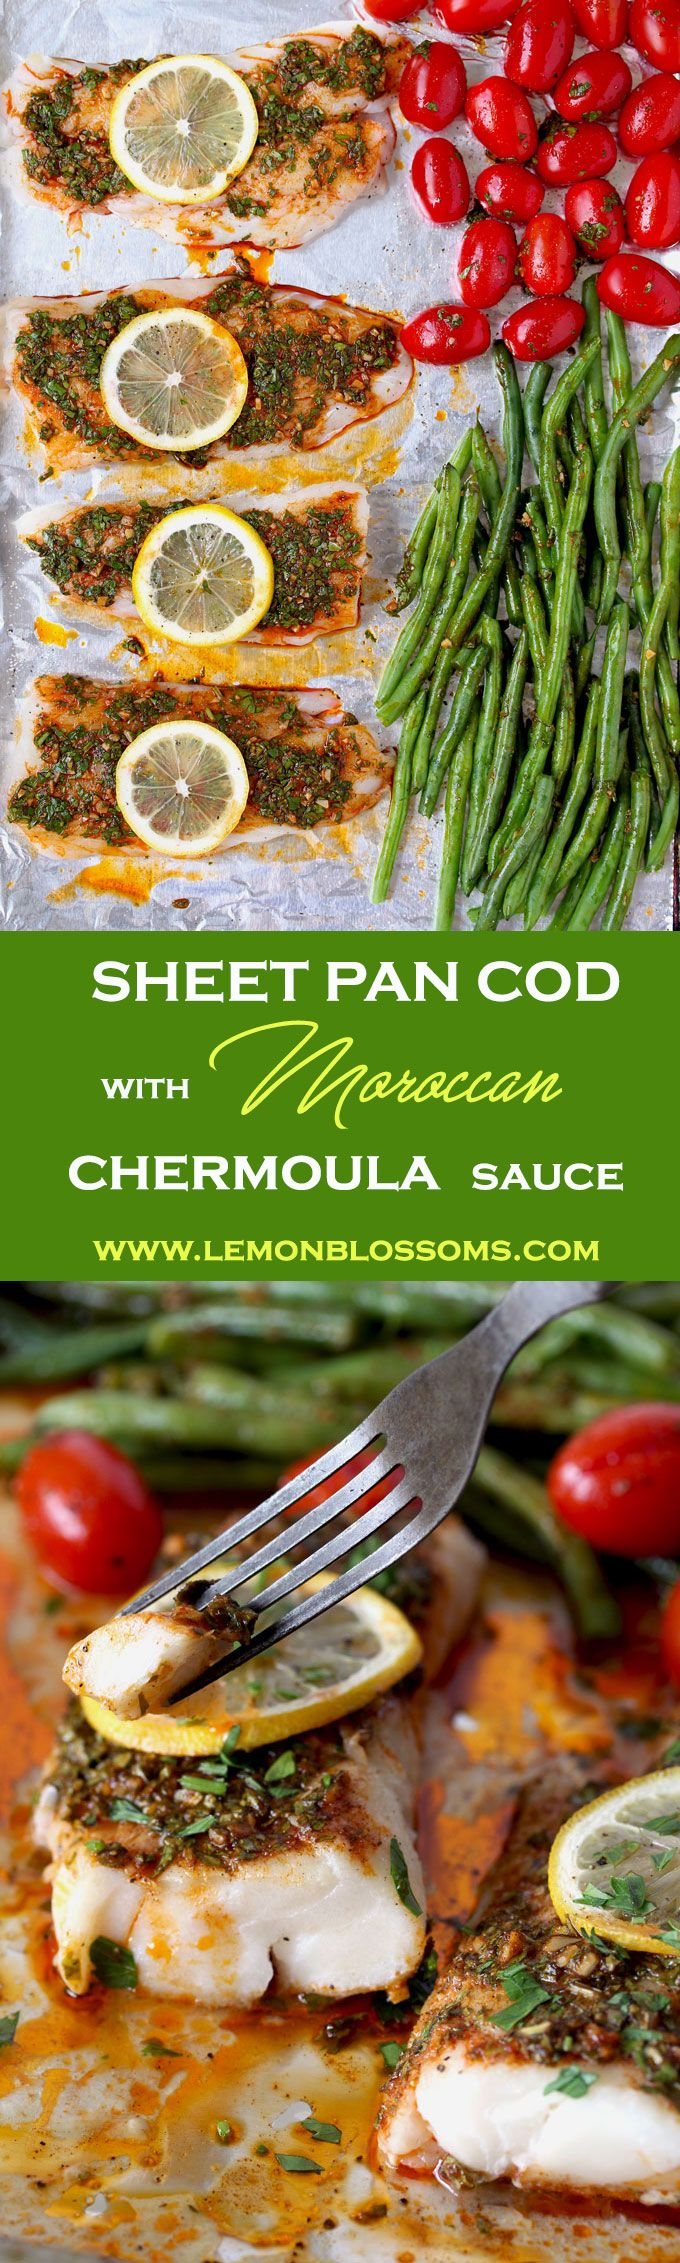 This flavor-packed meal is cooked on a single sheet pan and ready in under 30 minutes! Wild Cod, Green Beans and Cherry Tomatoes are roasted to perfection with Chermoula, a Moroccan inspired fresh herbs, lemon and garlic sauce. Quick, easy and delicious! via @lmnblossoms